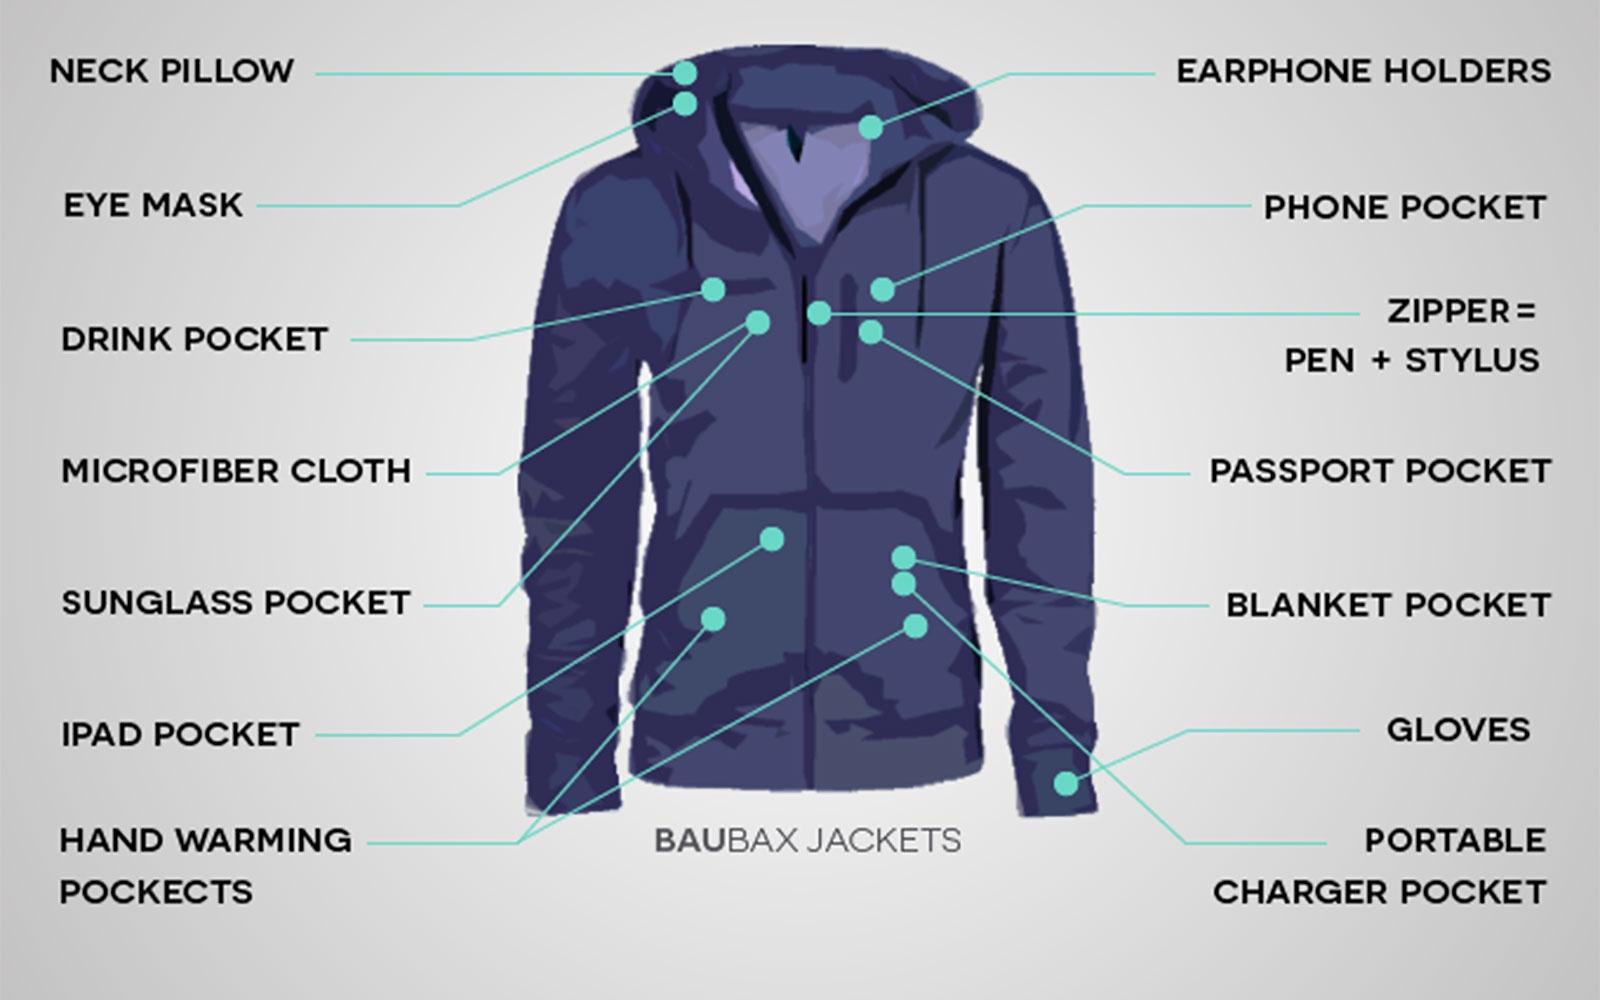 Ingenious Travel Jacket Has Already Raised $900K on Kickstarter